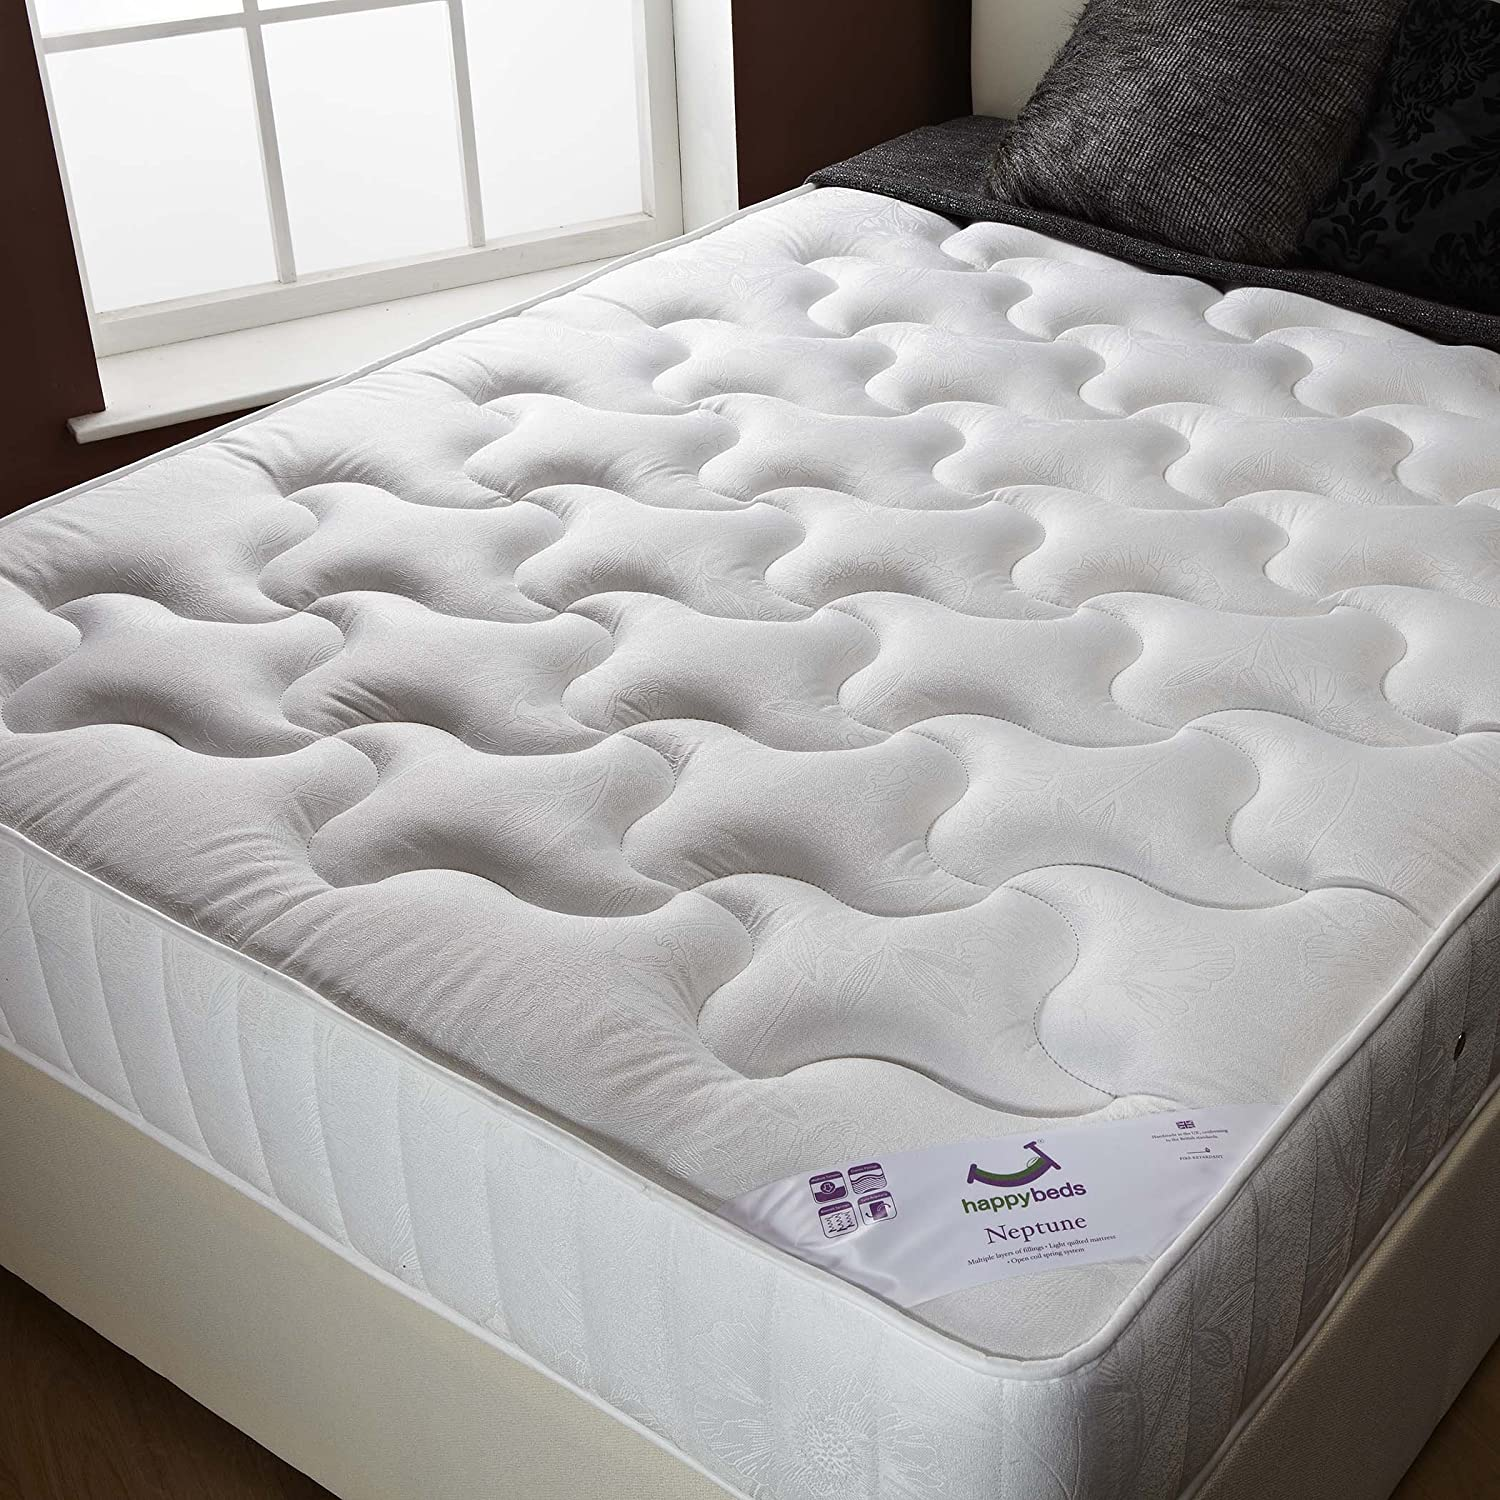 Neptune Bedroom Furniture Happy Beds Neptune Semi Orthopaedic Bonnell Spring Mattress